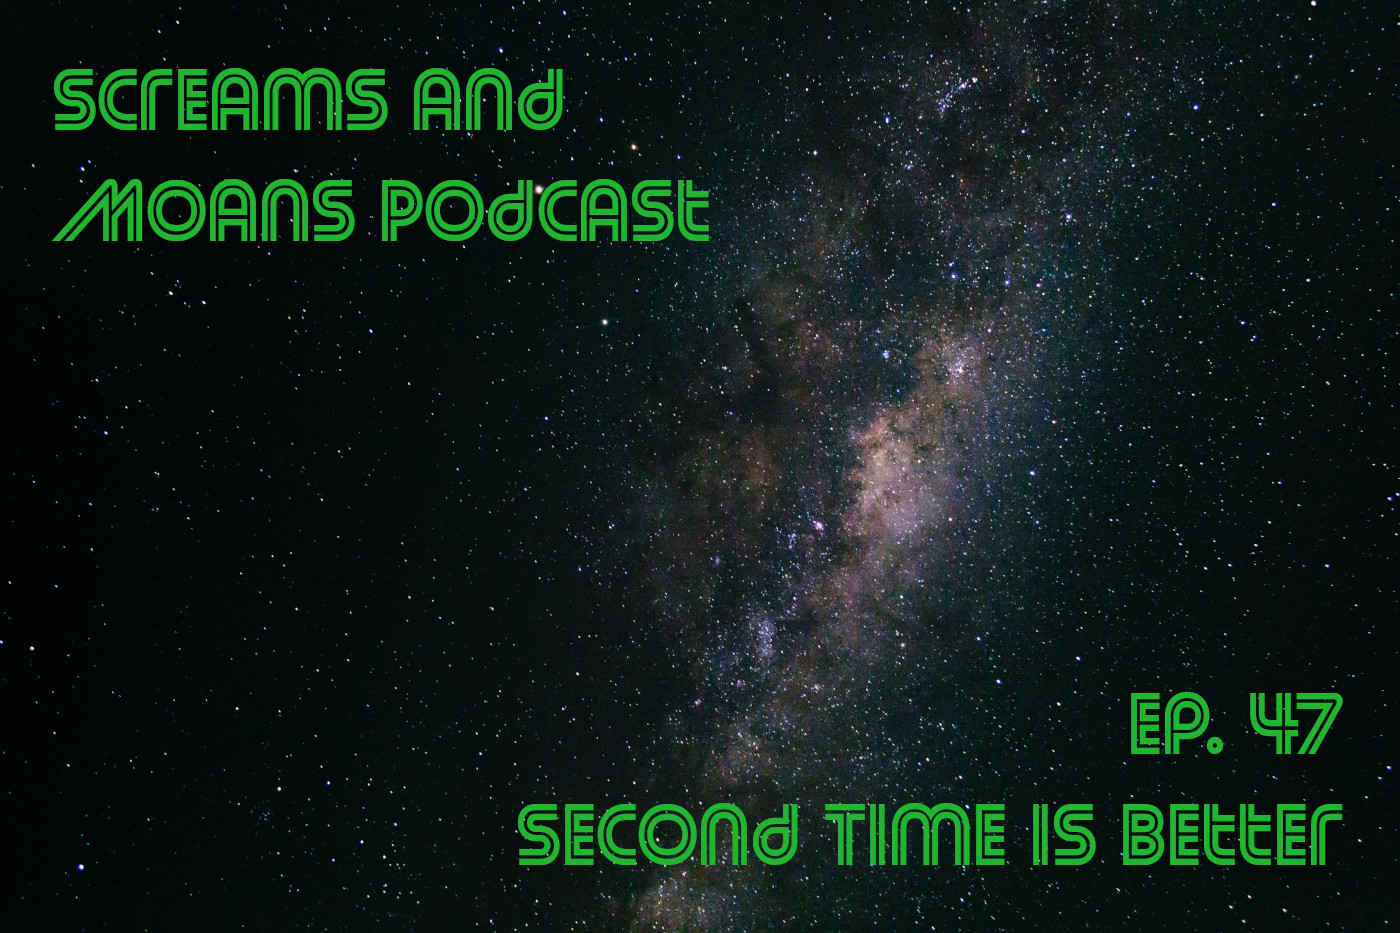 Galaxy with Screams and Moans Podcast and episode title in neon green.